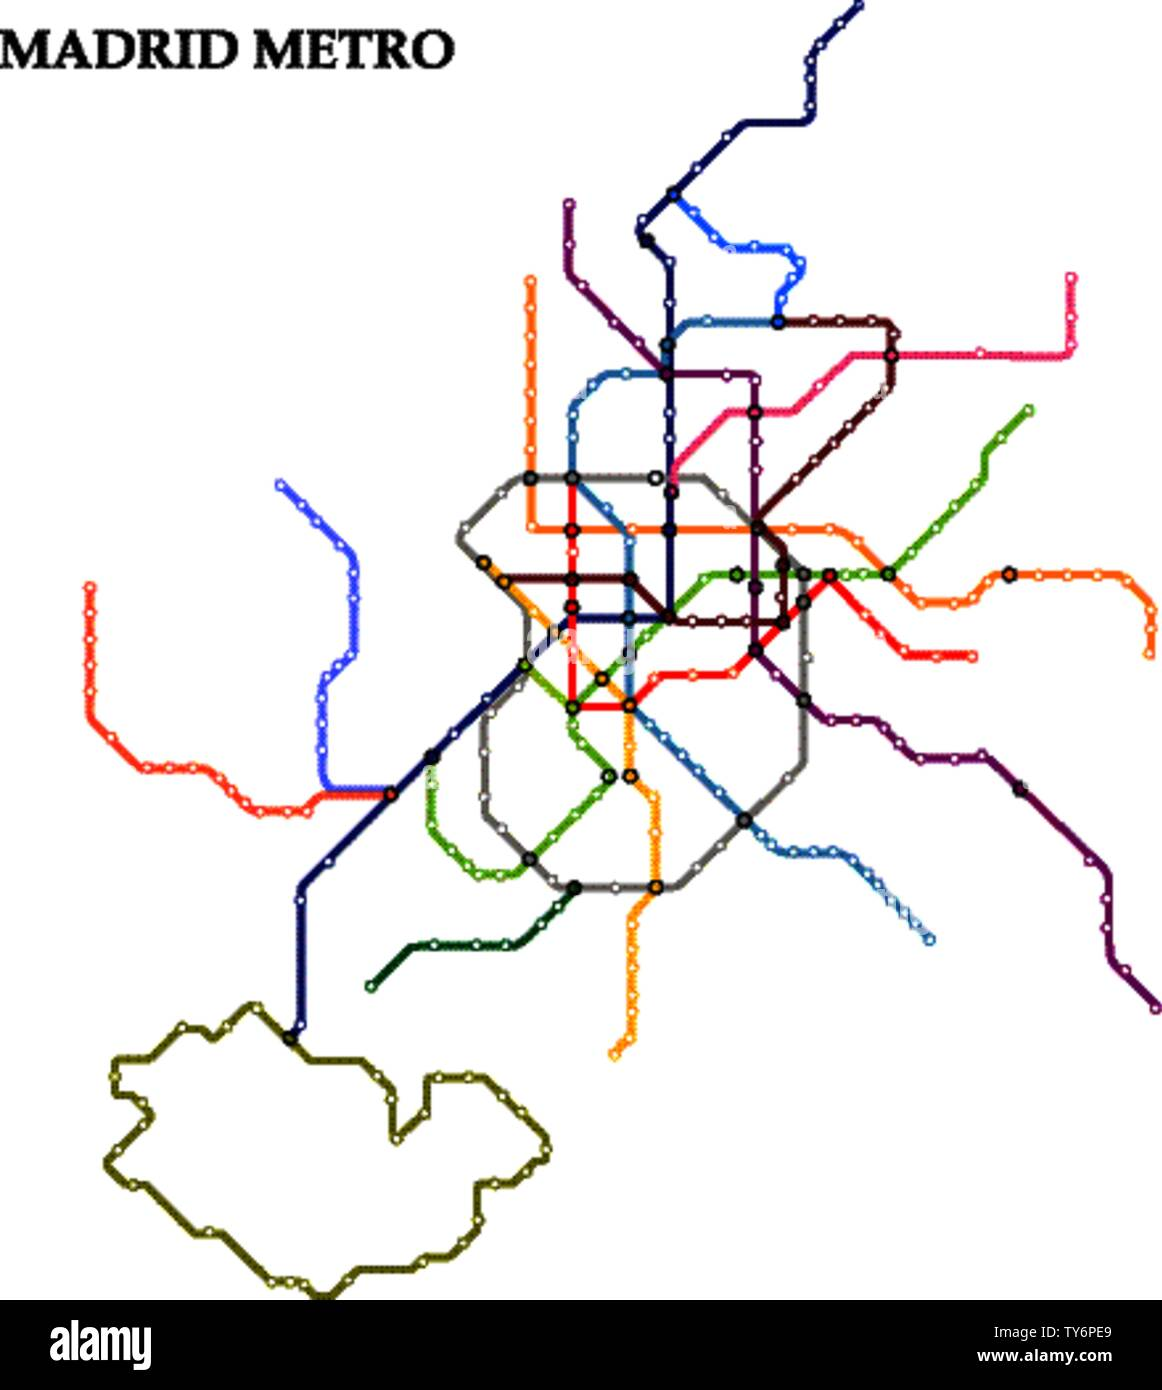 Map of the Madrid metro, Subway, Template of city ... Madrid Subway Map on laguardia subway map, amsterdam subway map, barcelona subway map, new york subway map, mexico subway map, philadelphia subway map, chicago subway map, bilbao subway map, vienna subway map, los angeles subway map, hong kong mtr subway map, pretoria subway map, dresden subway map, lima subway map, barcelona train map, kaohsiung subway map, london subway map, porto subway map, napoli subway map, tel aviv subway map,